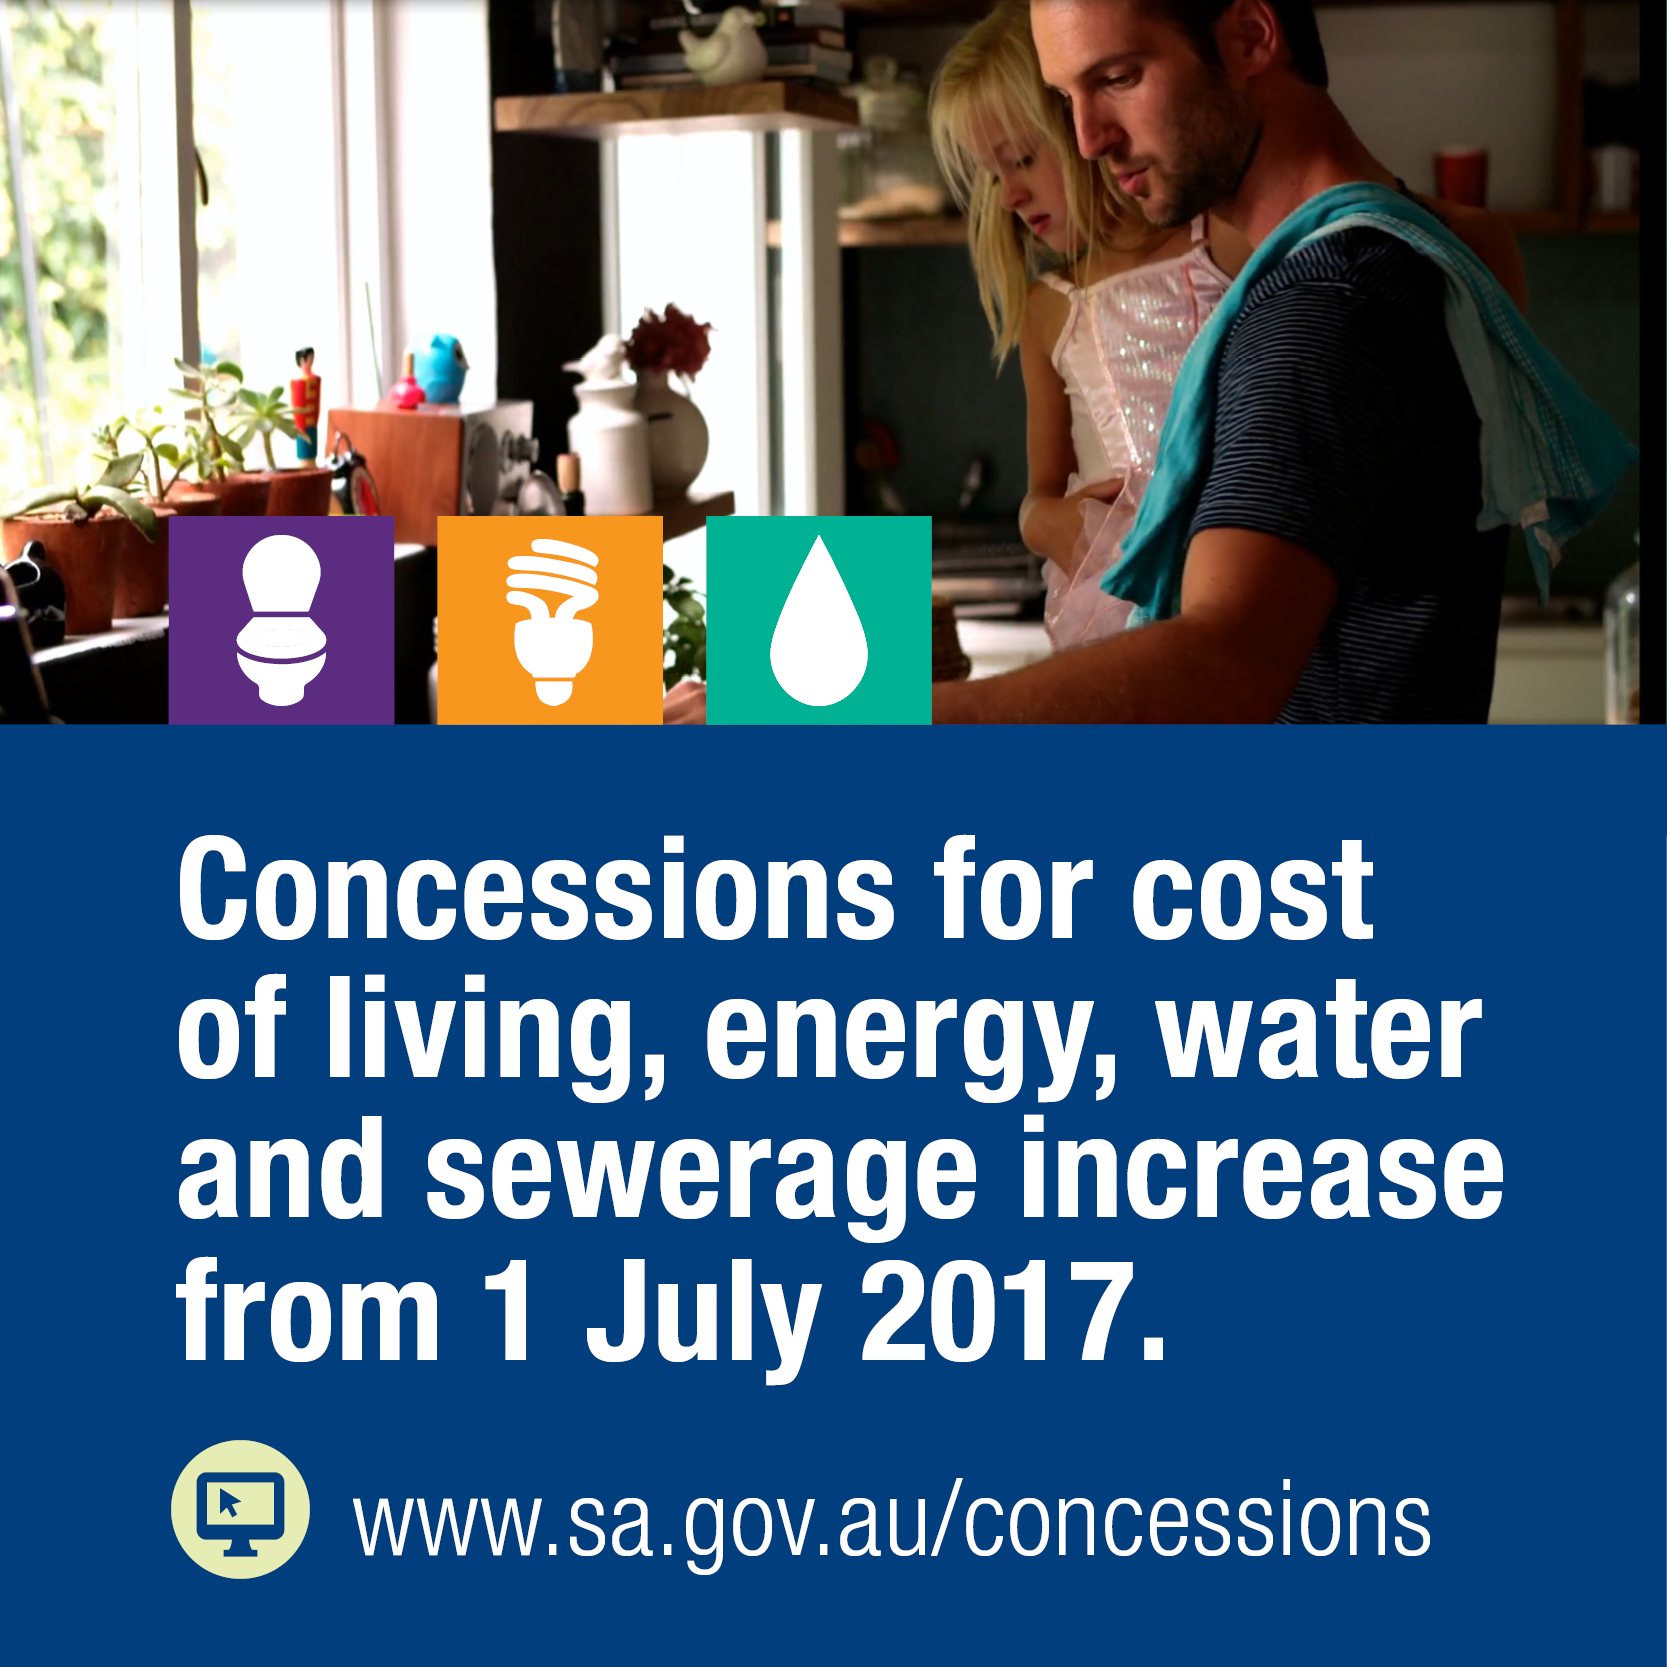 Cost of living concession increase